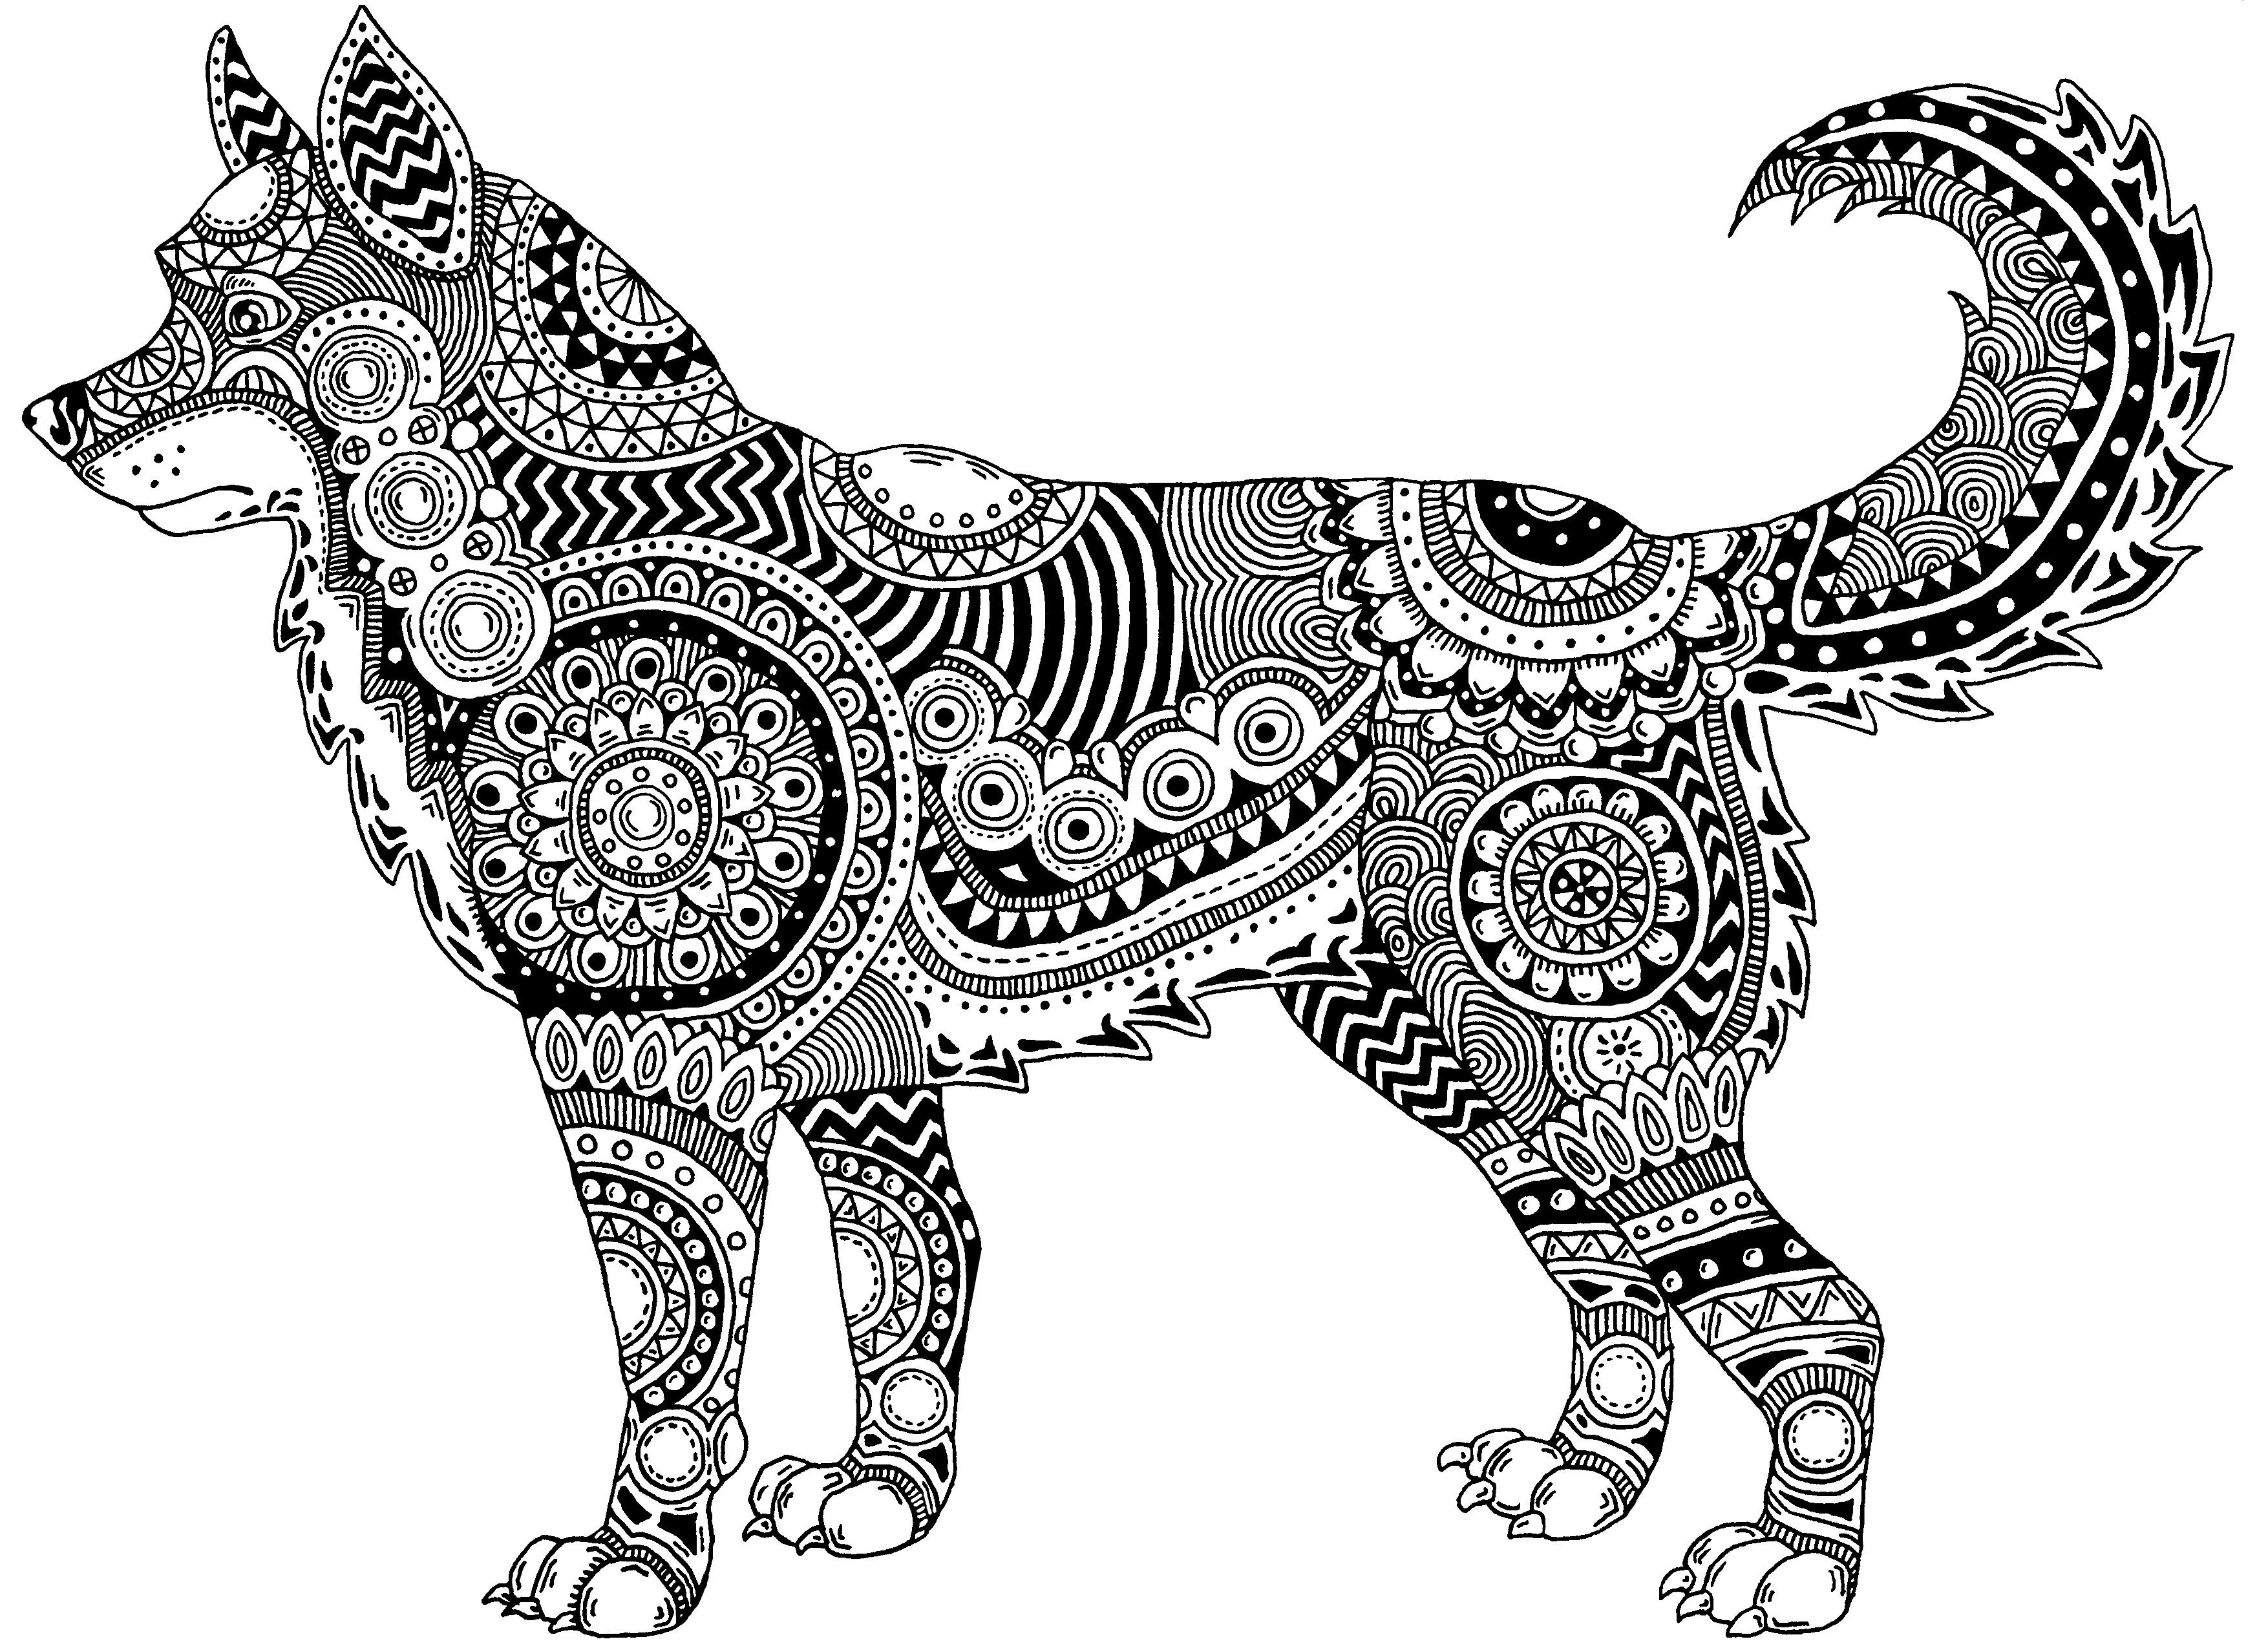 Pin On Black And White Art Zentangle And Sketches Janelle Dimmett